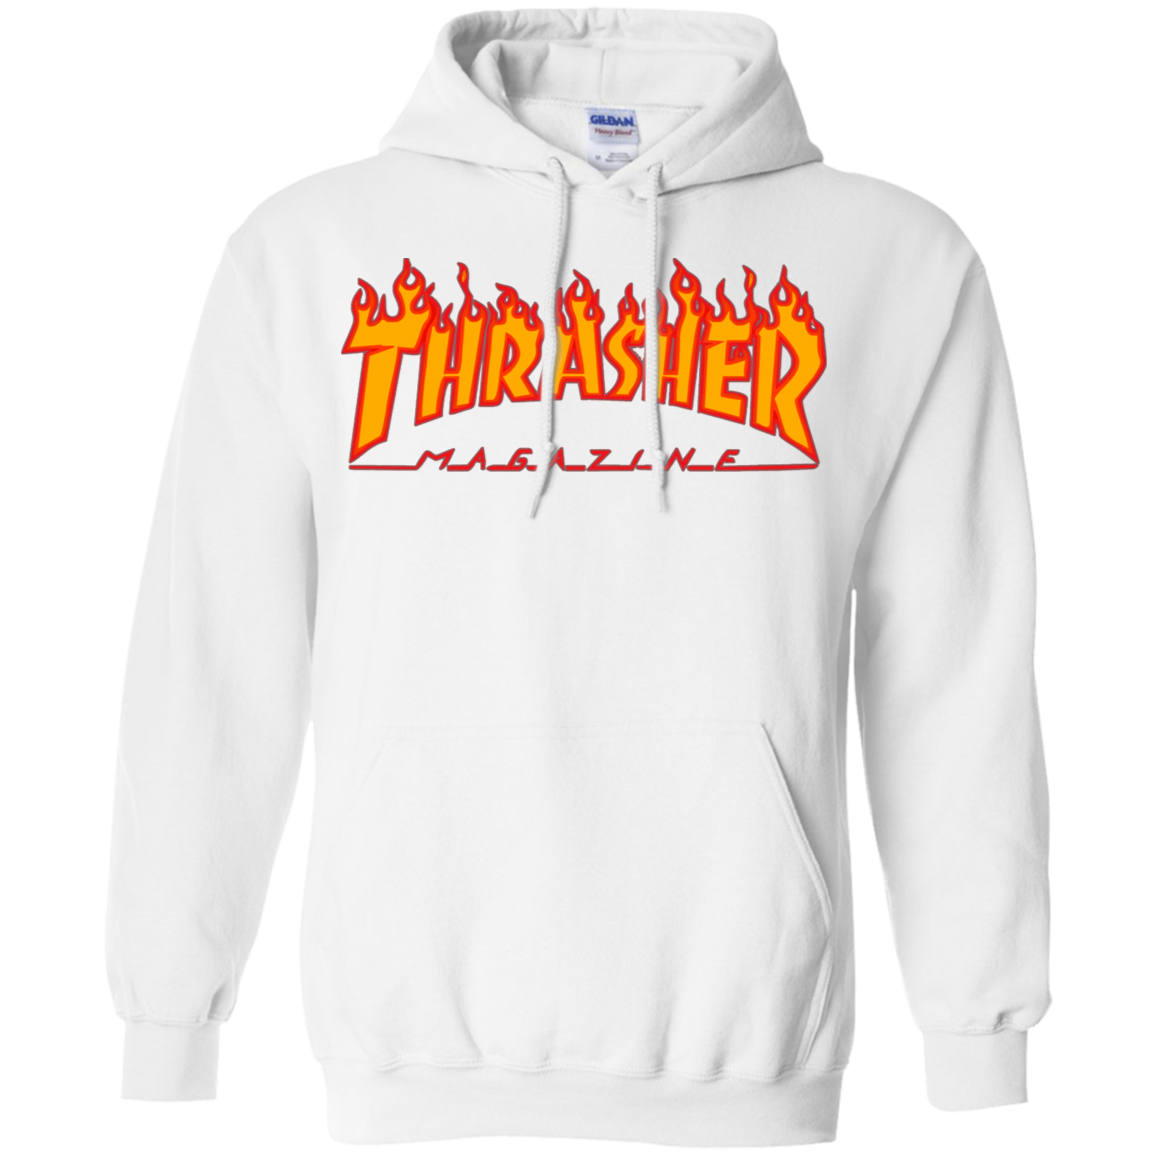 0ad9b4e6e221 Thrasher Magazine Skateboarding Fire Design Pullover Hoodie - AGREEABLE